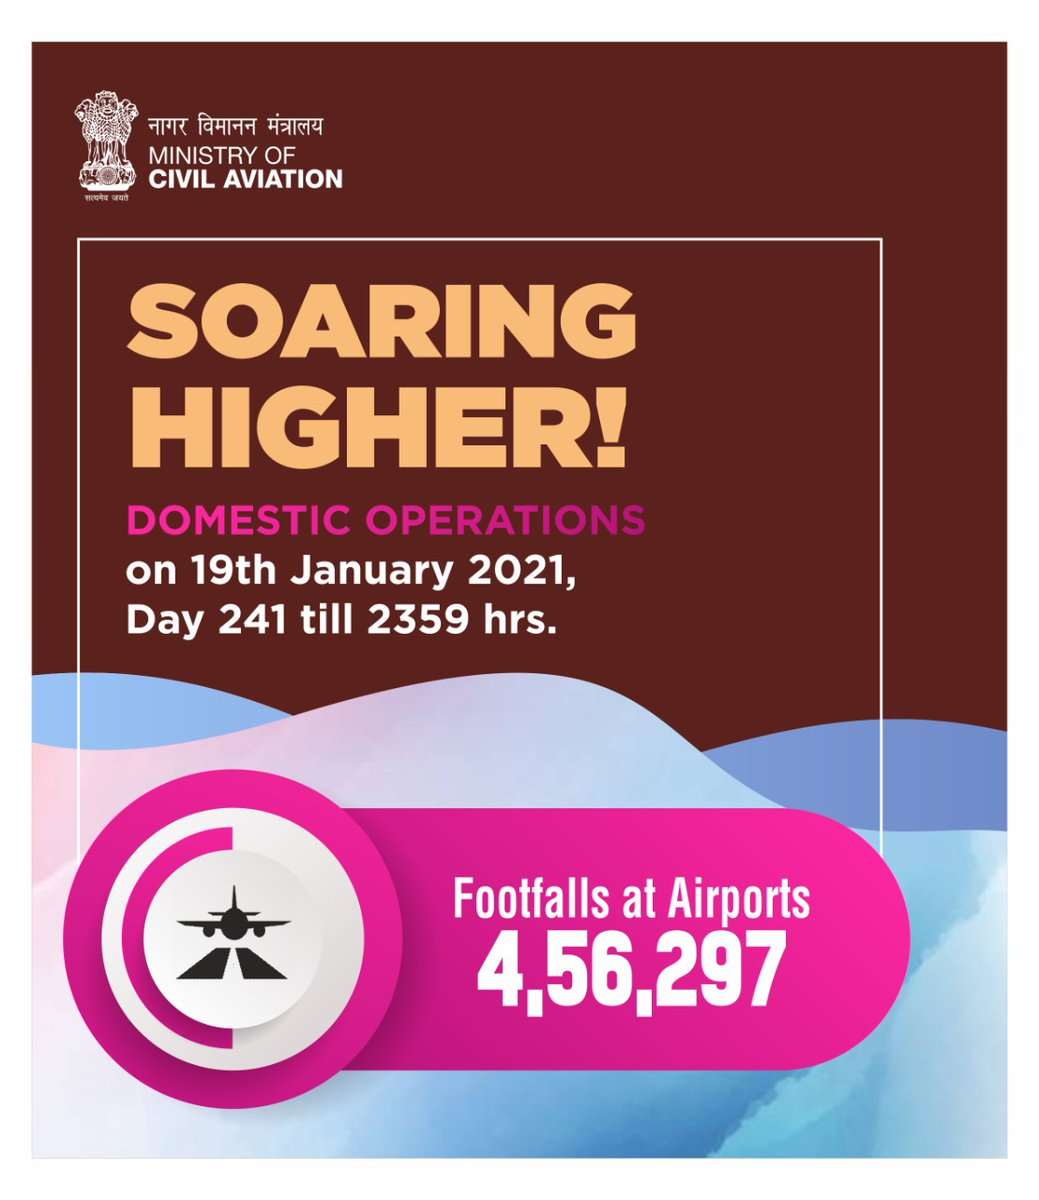 India soaring higher!  Over 4.56 lakh footfalls were recorded at airports across the country on 19th January. Aviation operations continue to soar! #SabUdenSabJuden #IndiaFliesHigh